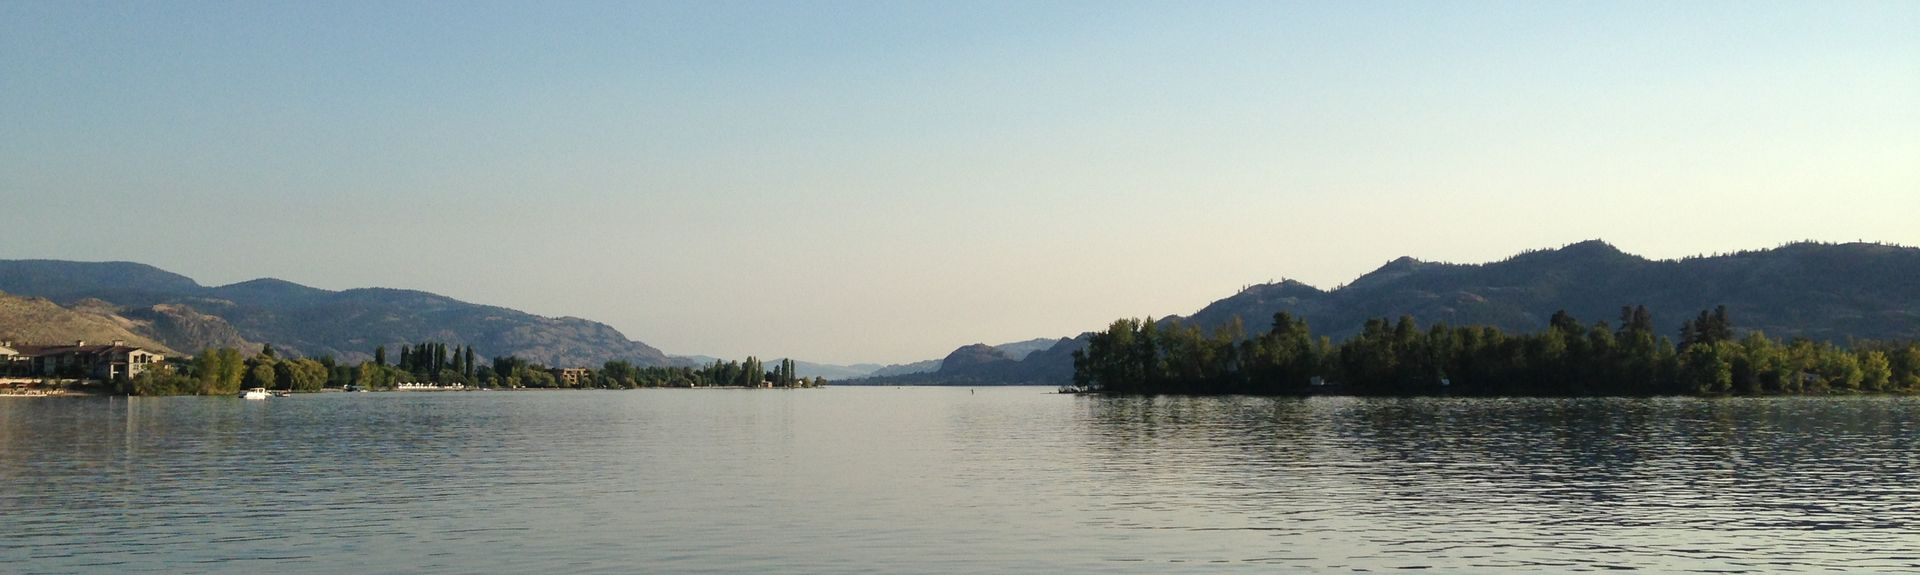 Village On The Lake (Osoyoos, Britisk Columbia, Canada)